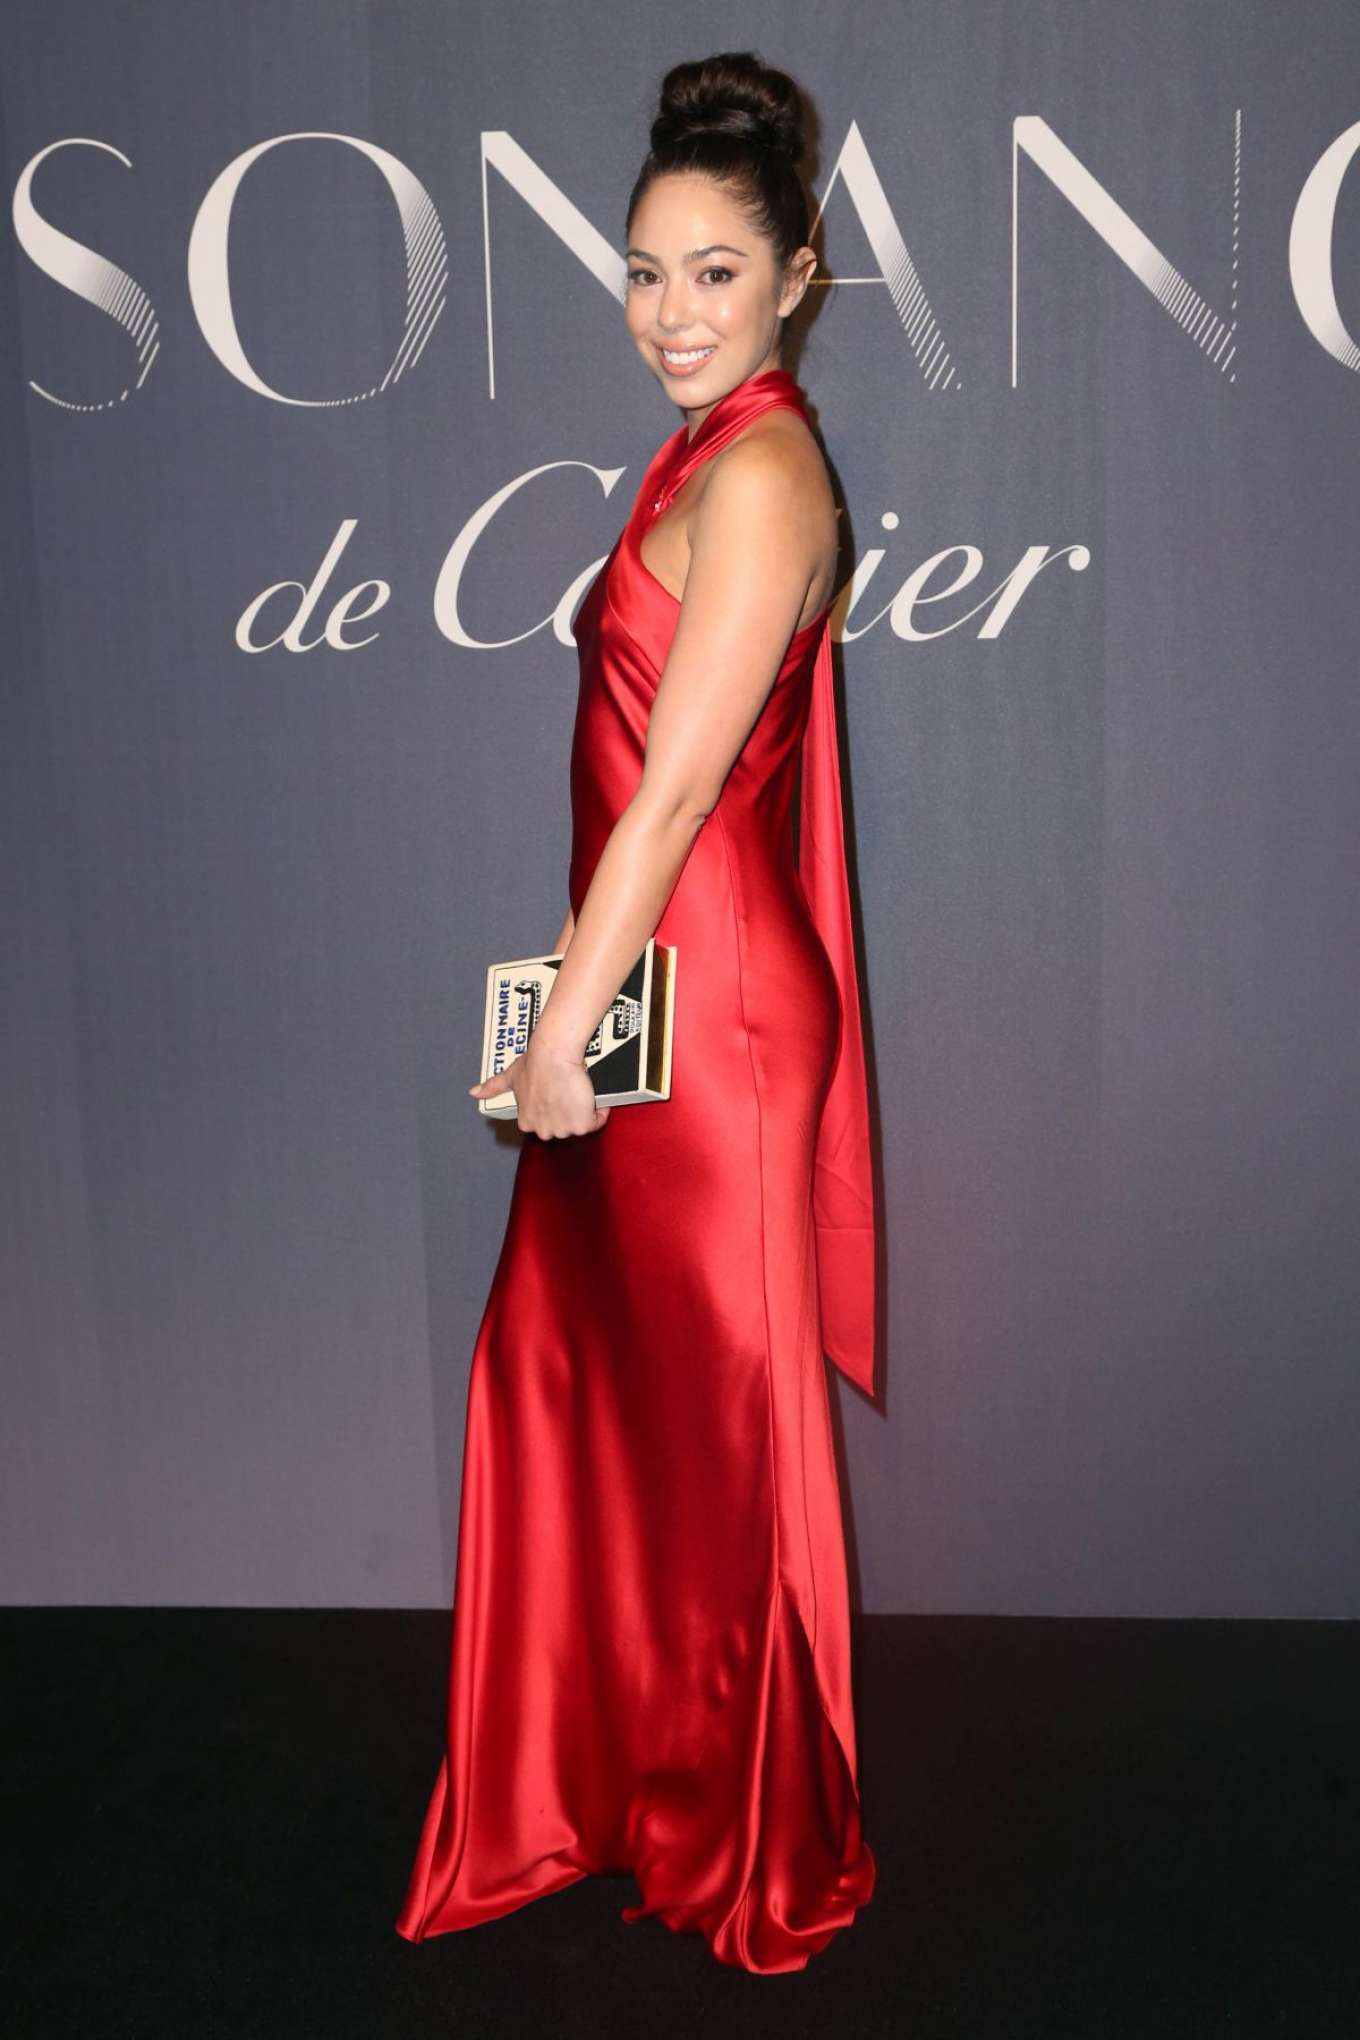 Chantelle Waters - Resonances De Cartier Jewelry Collection Launch in NY